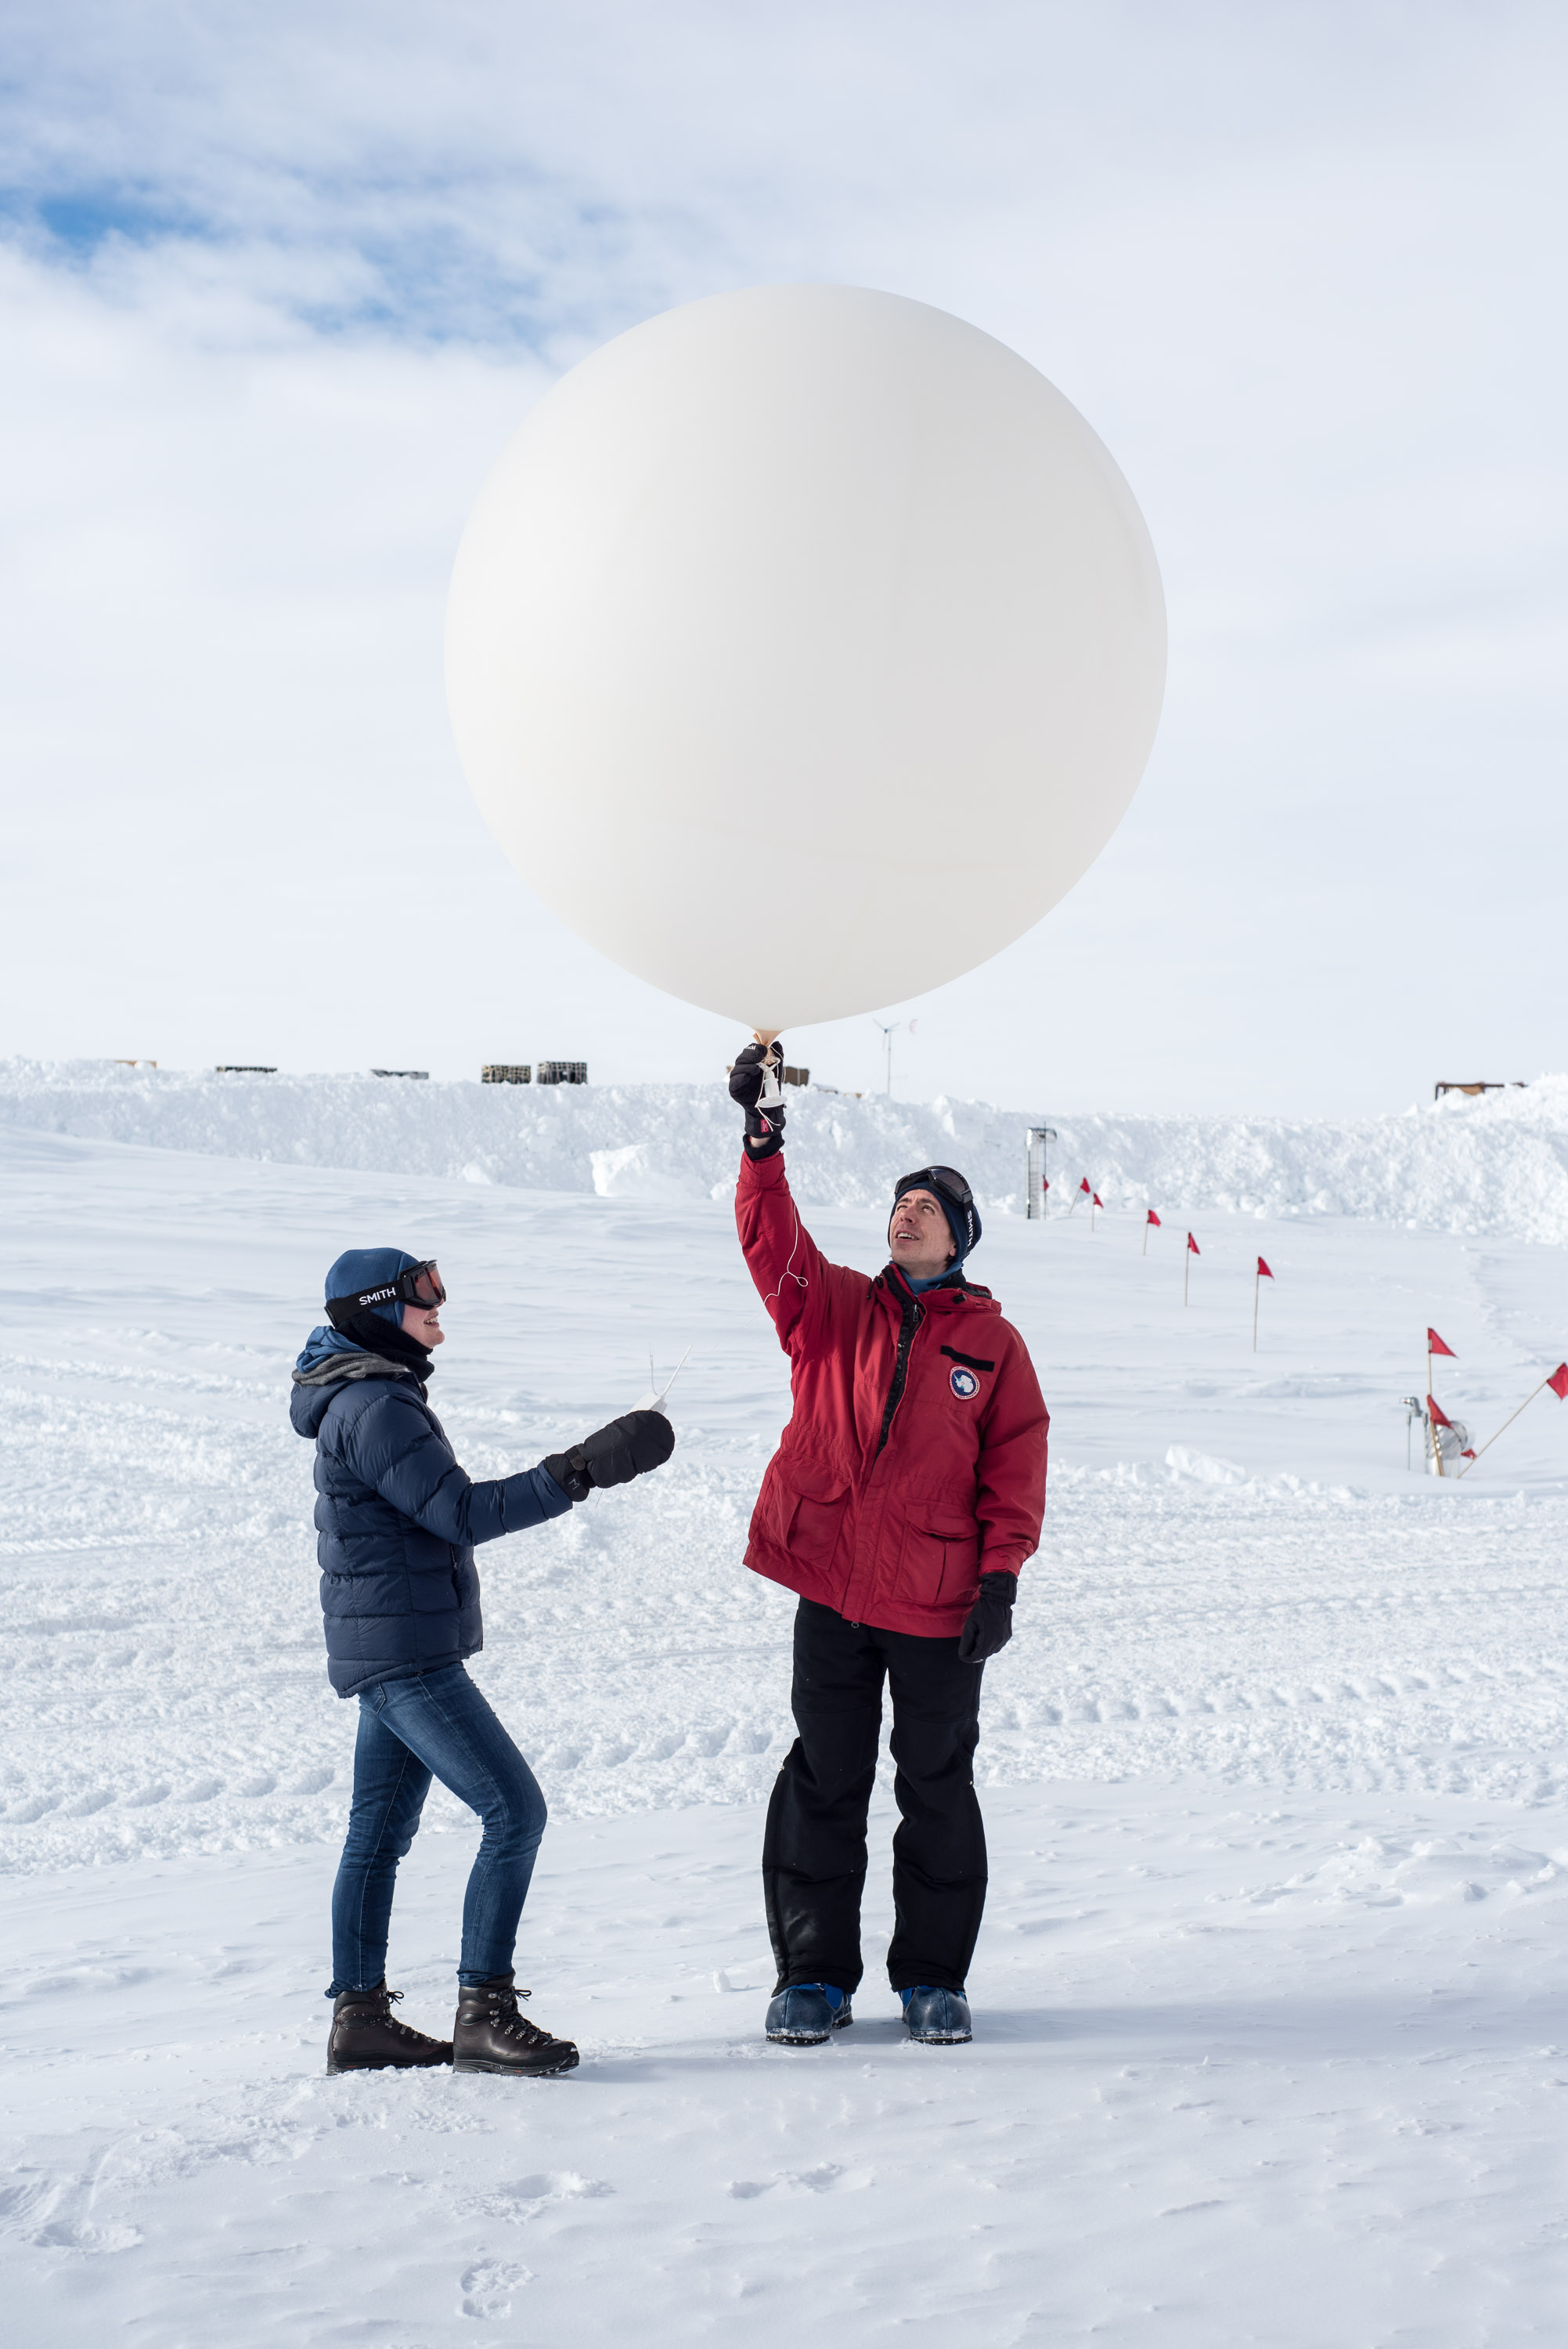 IceCube winterovers playing with a weather balloon